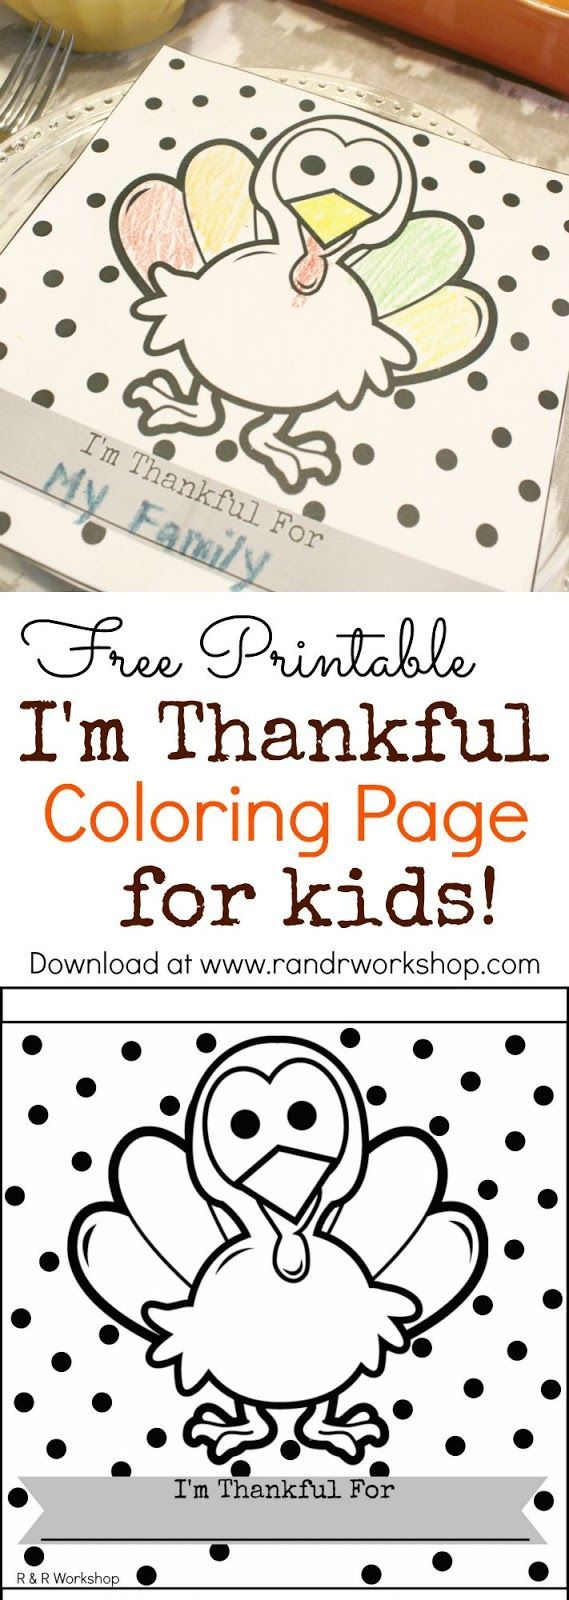 Thanksgiving coloring games online - Kids Thanksgiving Coloring Page Free Printable